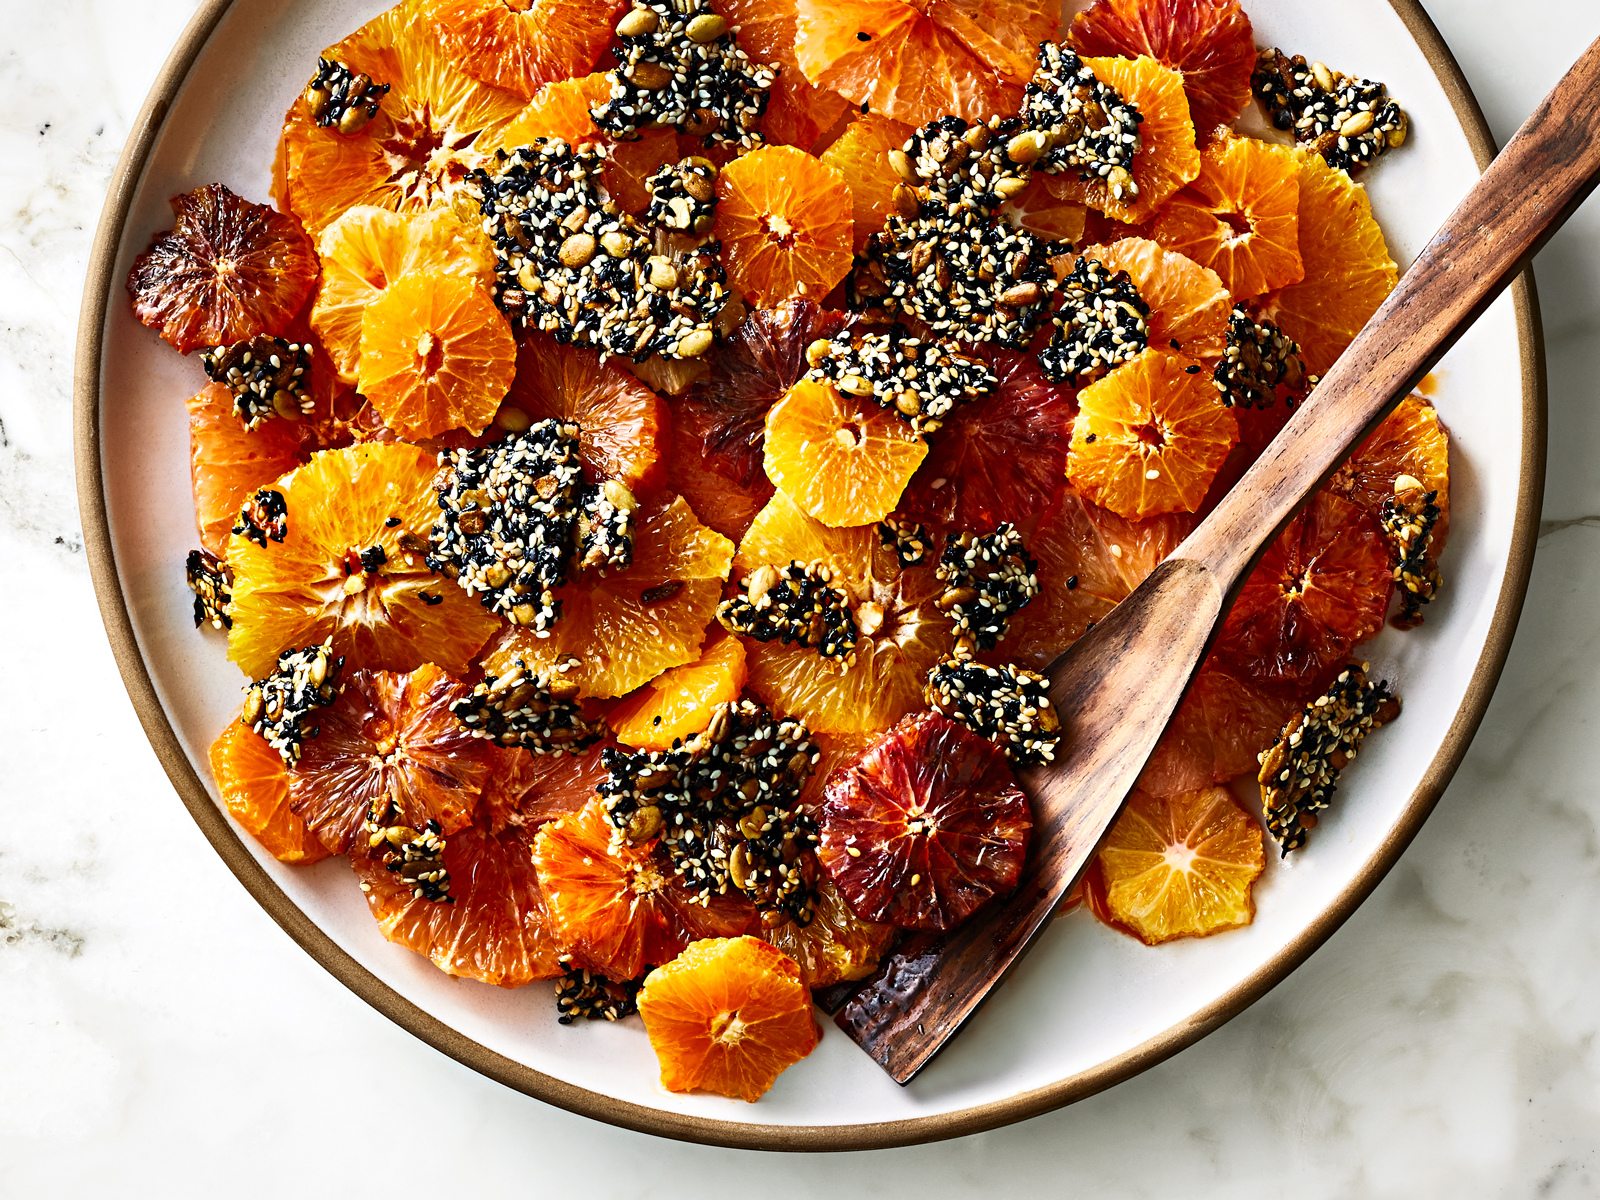 Roasted Citrus with Crunchy Three-Seed Brittle Recipe